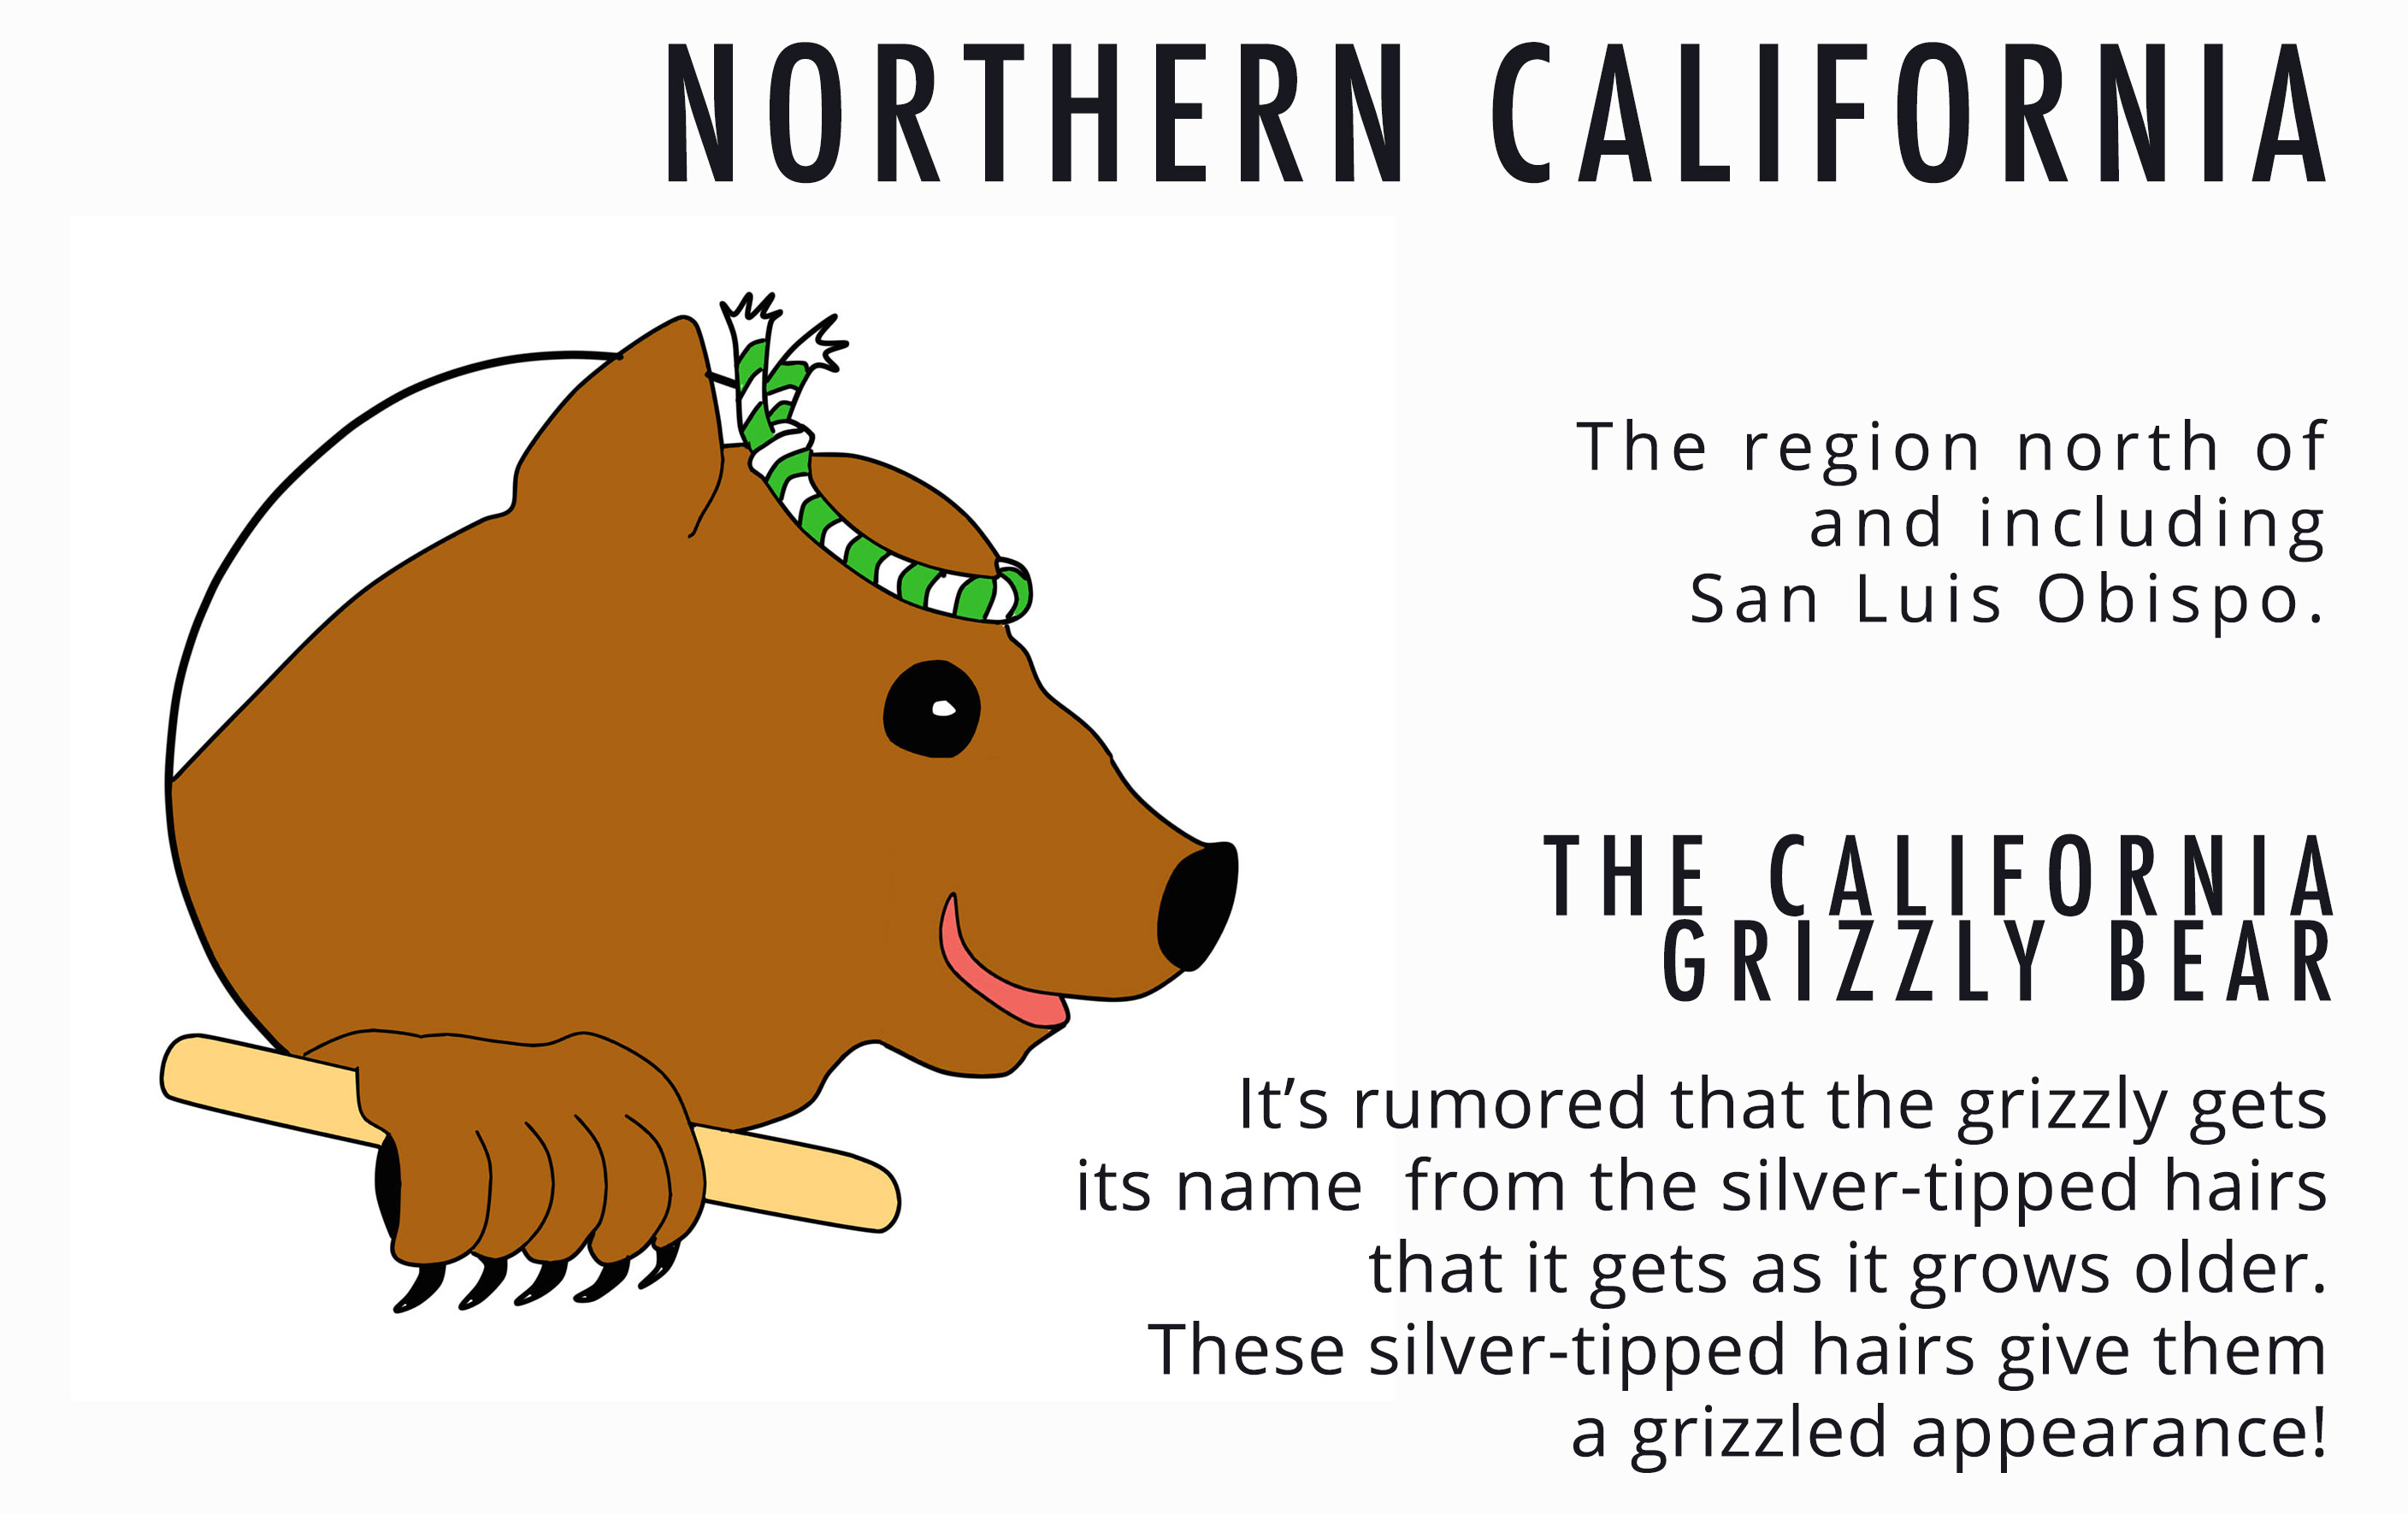 NorCal Grizzly Card